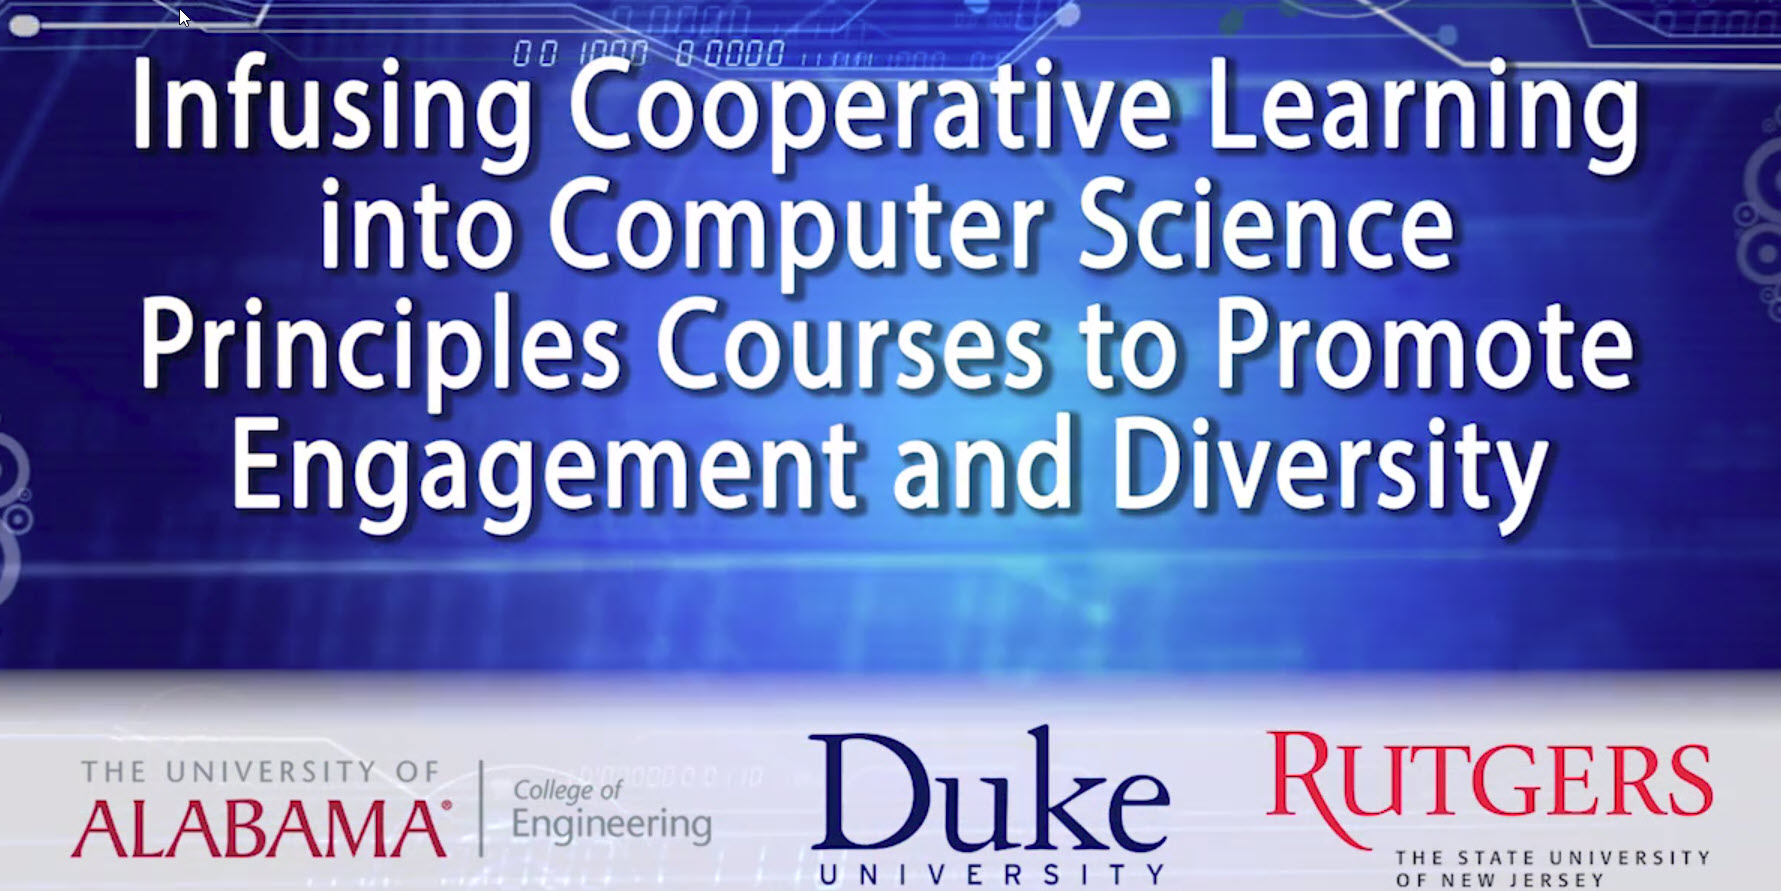 Infusing Cooperative Learning into Computer Science Principles Courses to Promote Engagement and Diversity